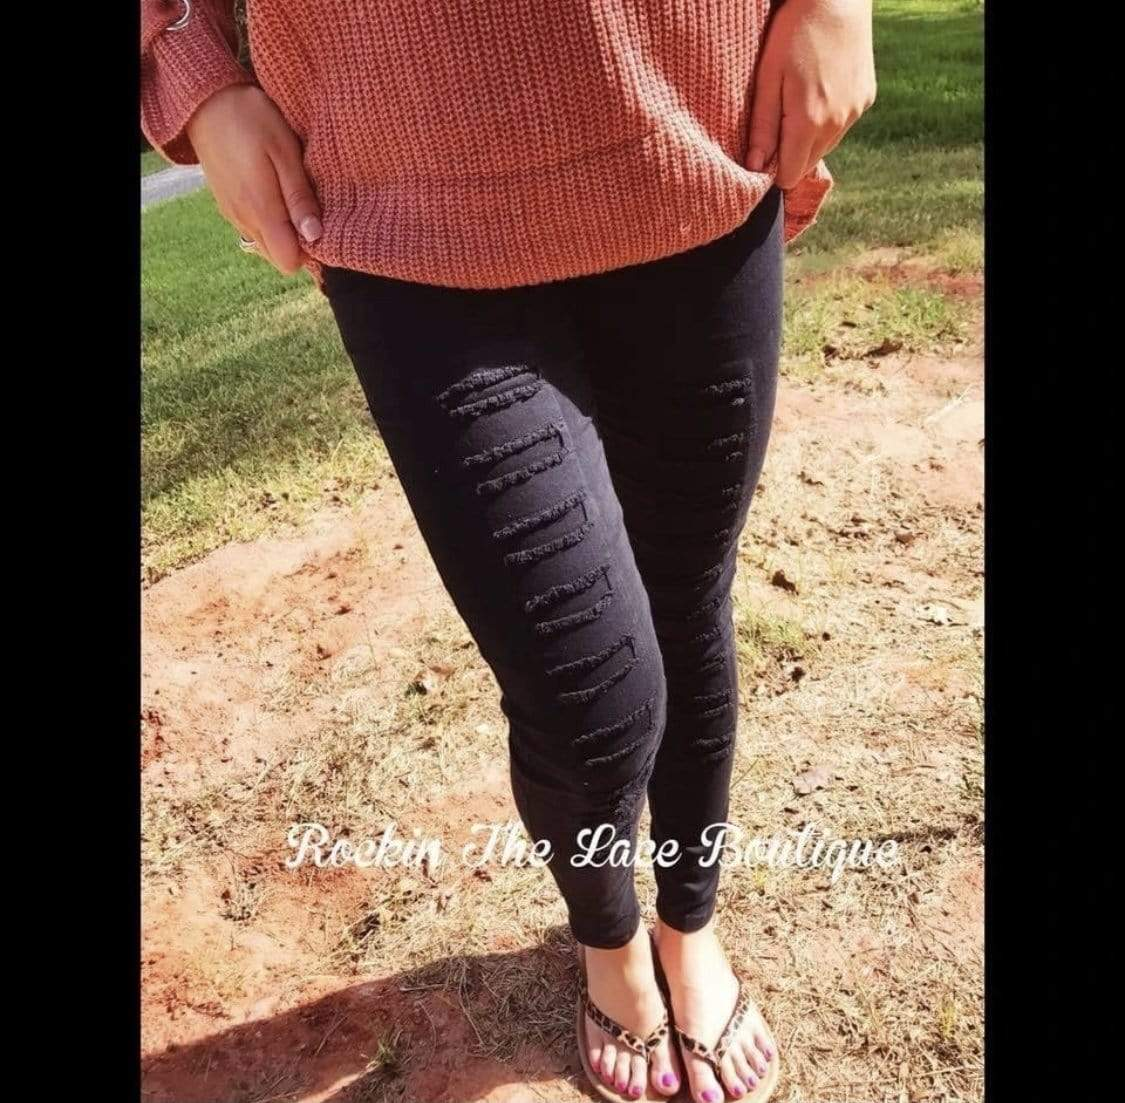 Black Distressed Jeggings Clearance Rockin The Lace Boutique